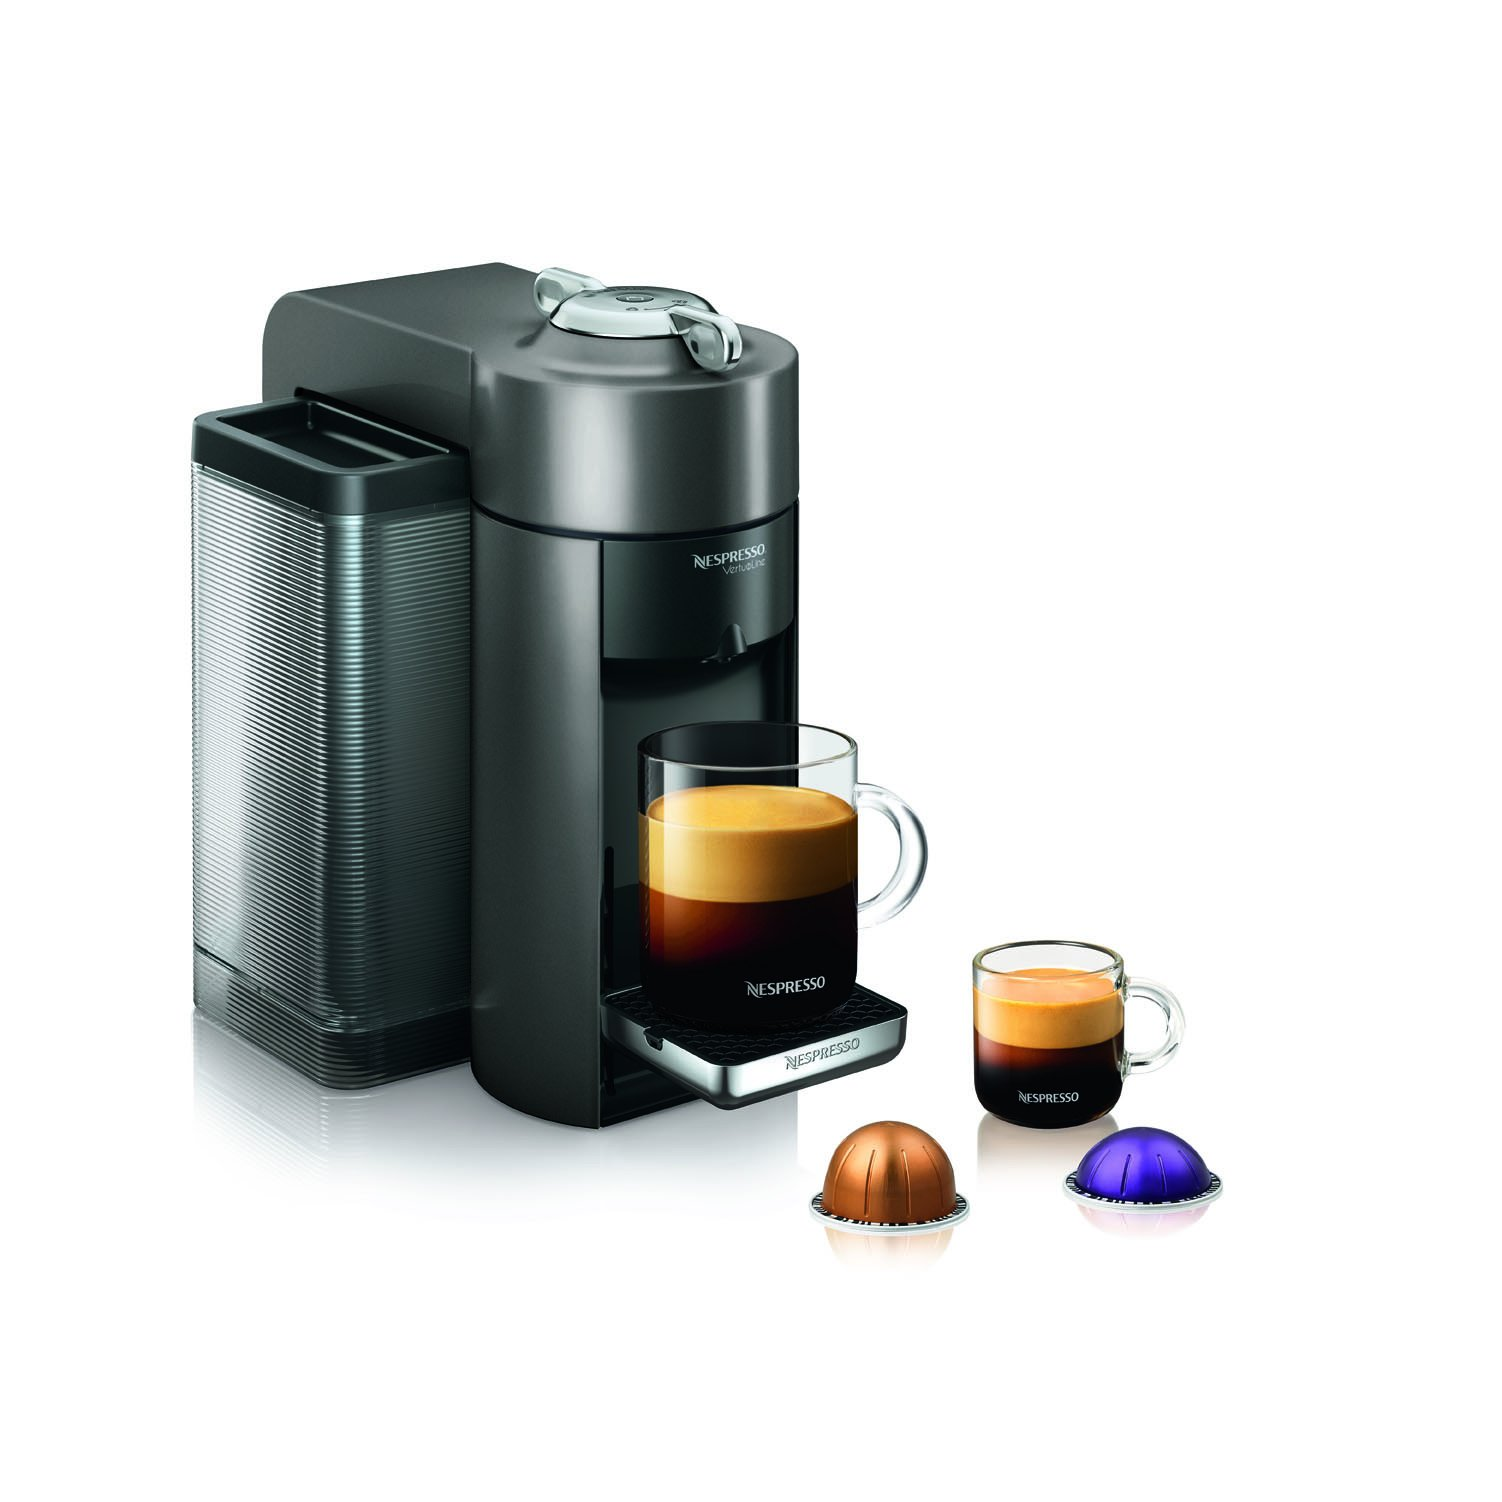 Nespresso GCC1-US-GM-NE VertuoLine Evoluo Deluxe Coffee and Espresso Maker, Graphite Metal (Discontinued Model)